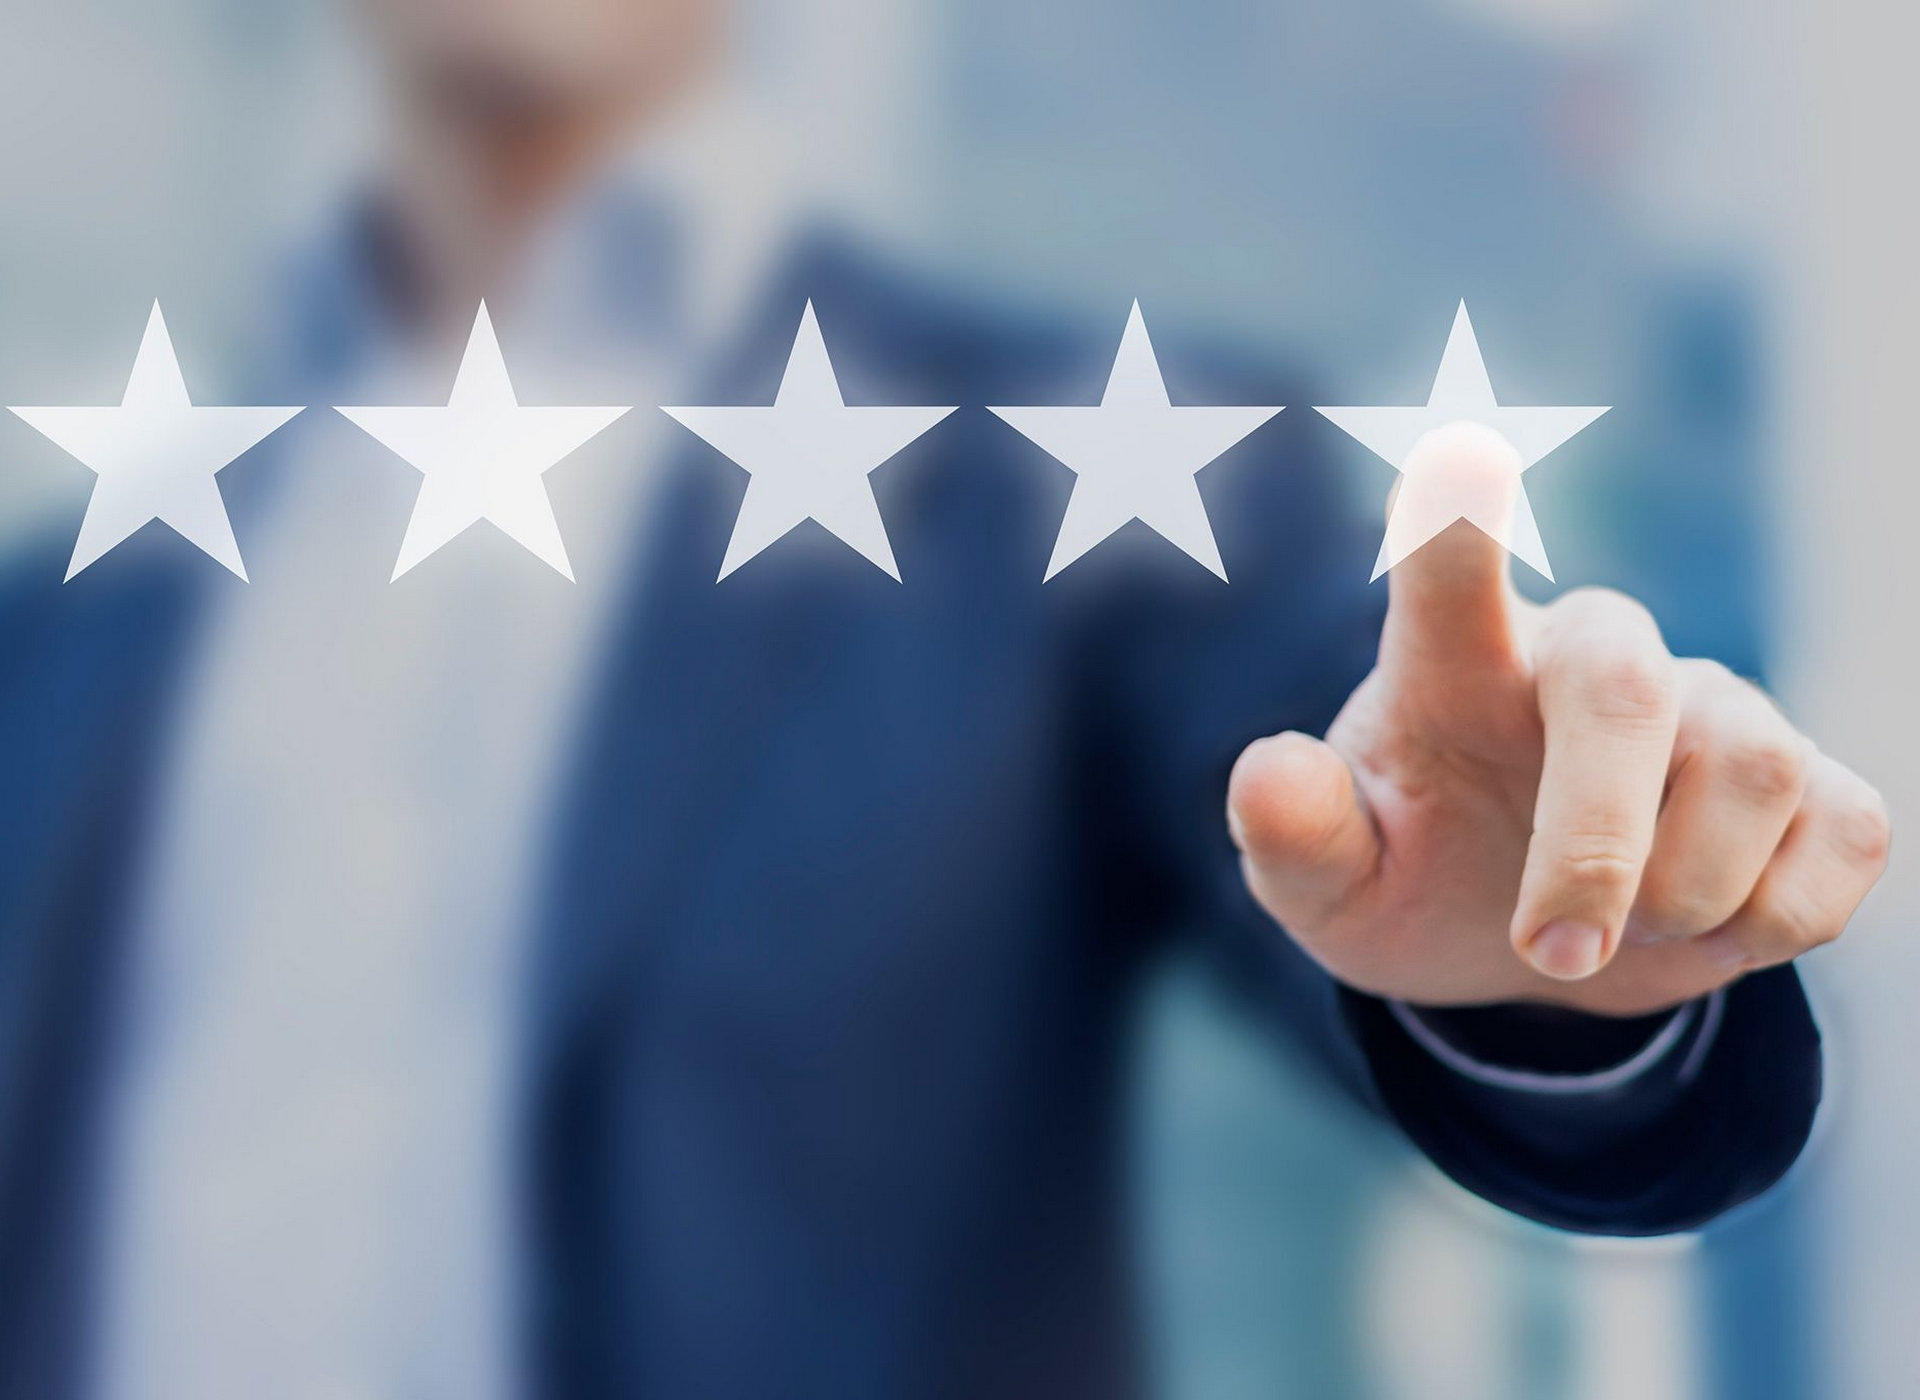 Image of man choosing a star to rate a review